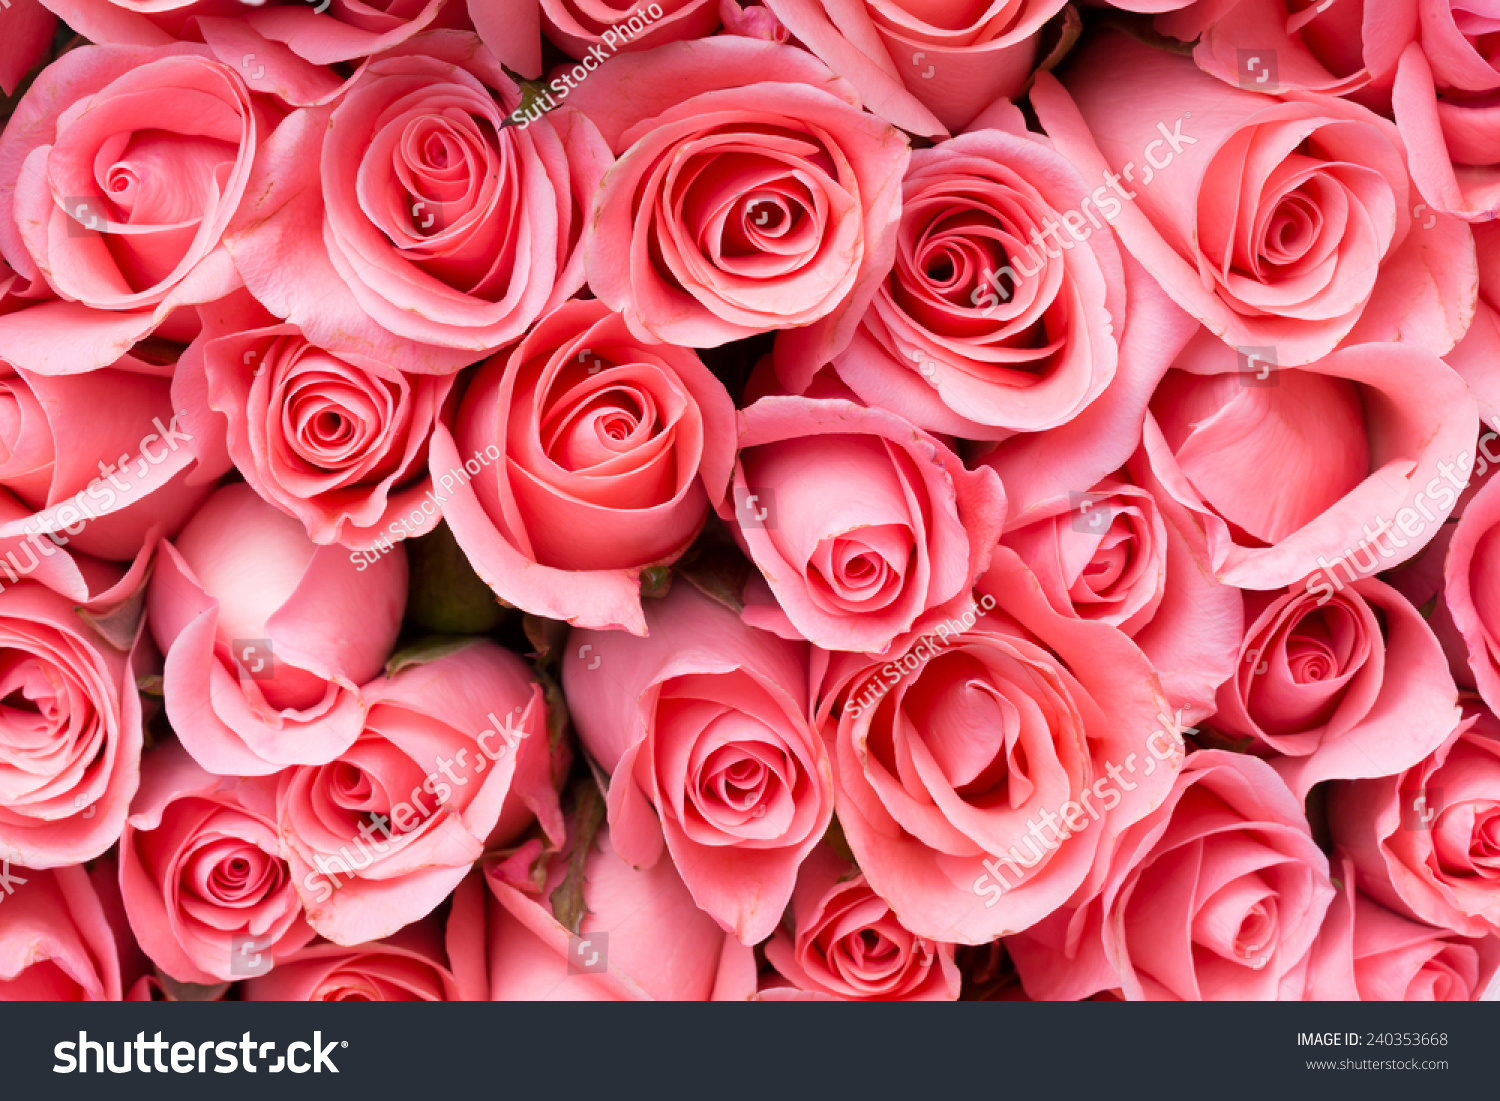 Pink Rose Flower Bouquet Background Stock Photo (Royalty Free ...